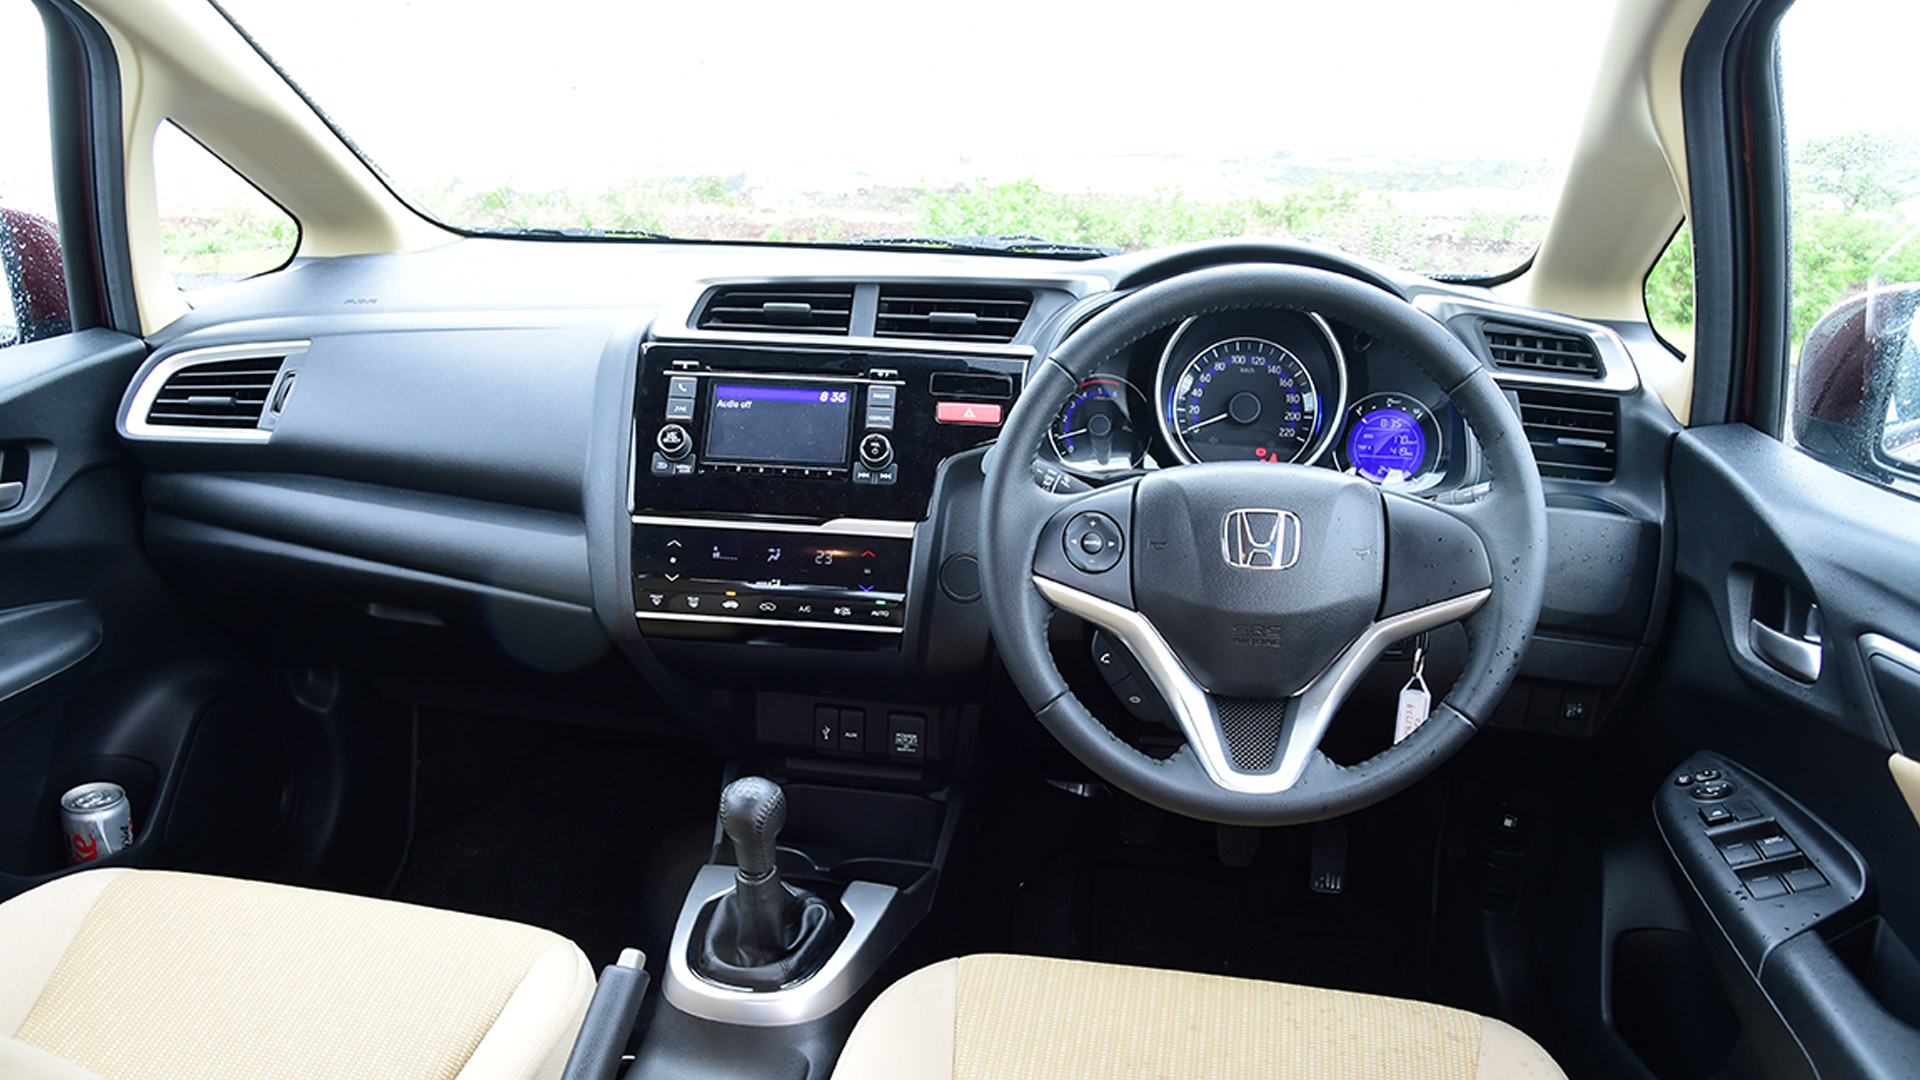 honda jazz 2015 petrol cvt v price mileage reviews specification gallery overdrive. Black Bedroom Furniture Sets. Home Design Ideas